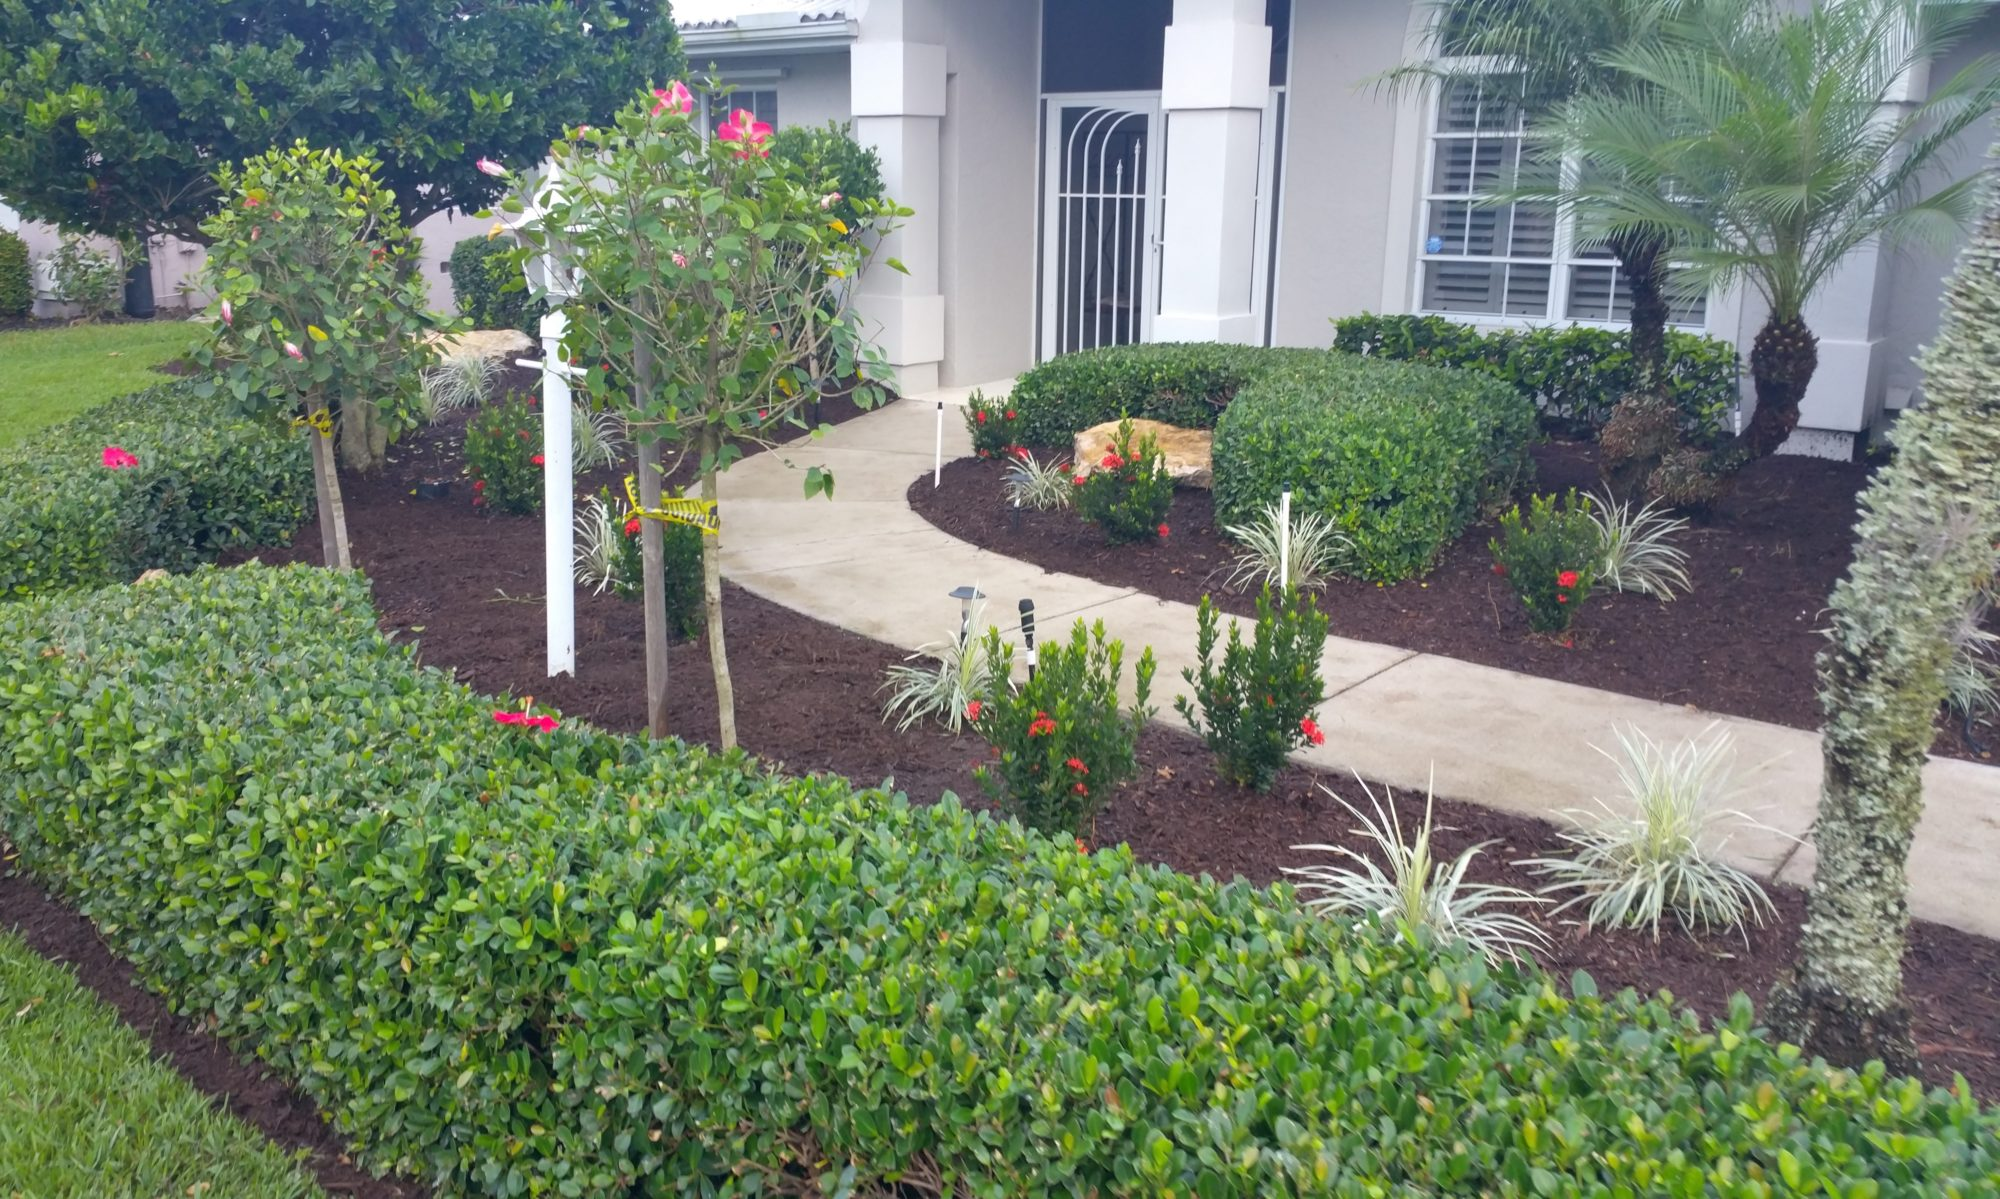 Aunt Bees Lawn Care Services in Venice FL